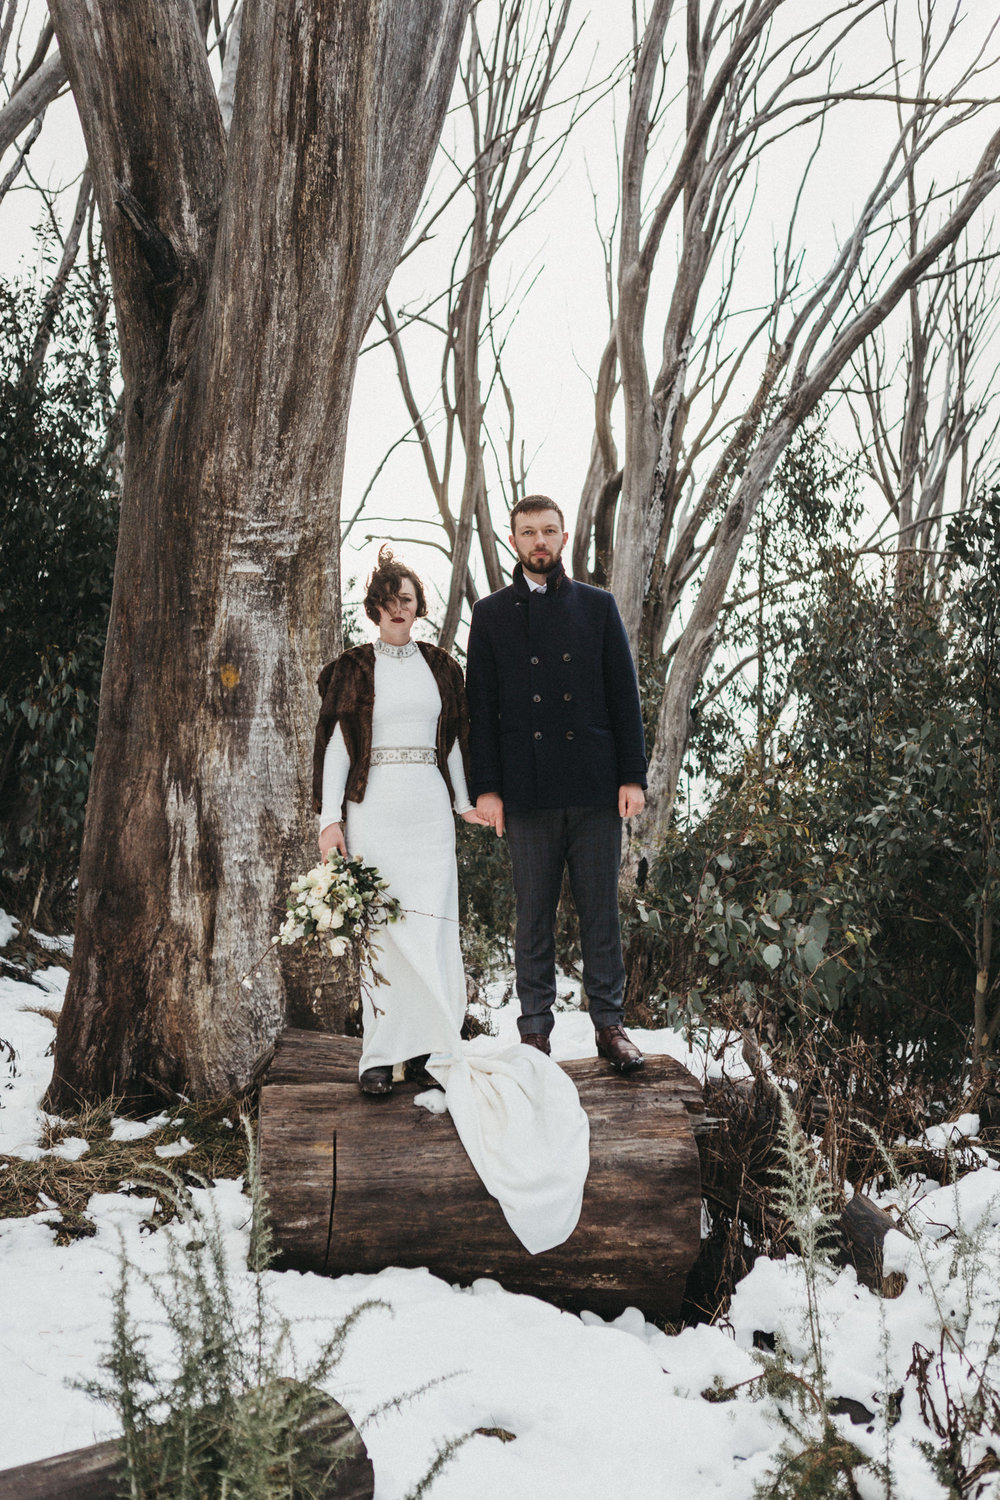 Winter_Elopement_Amie_Nick_Anna_Taylor_195-766A1904.jpg